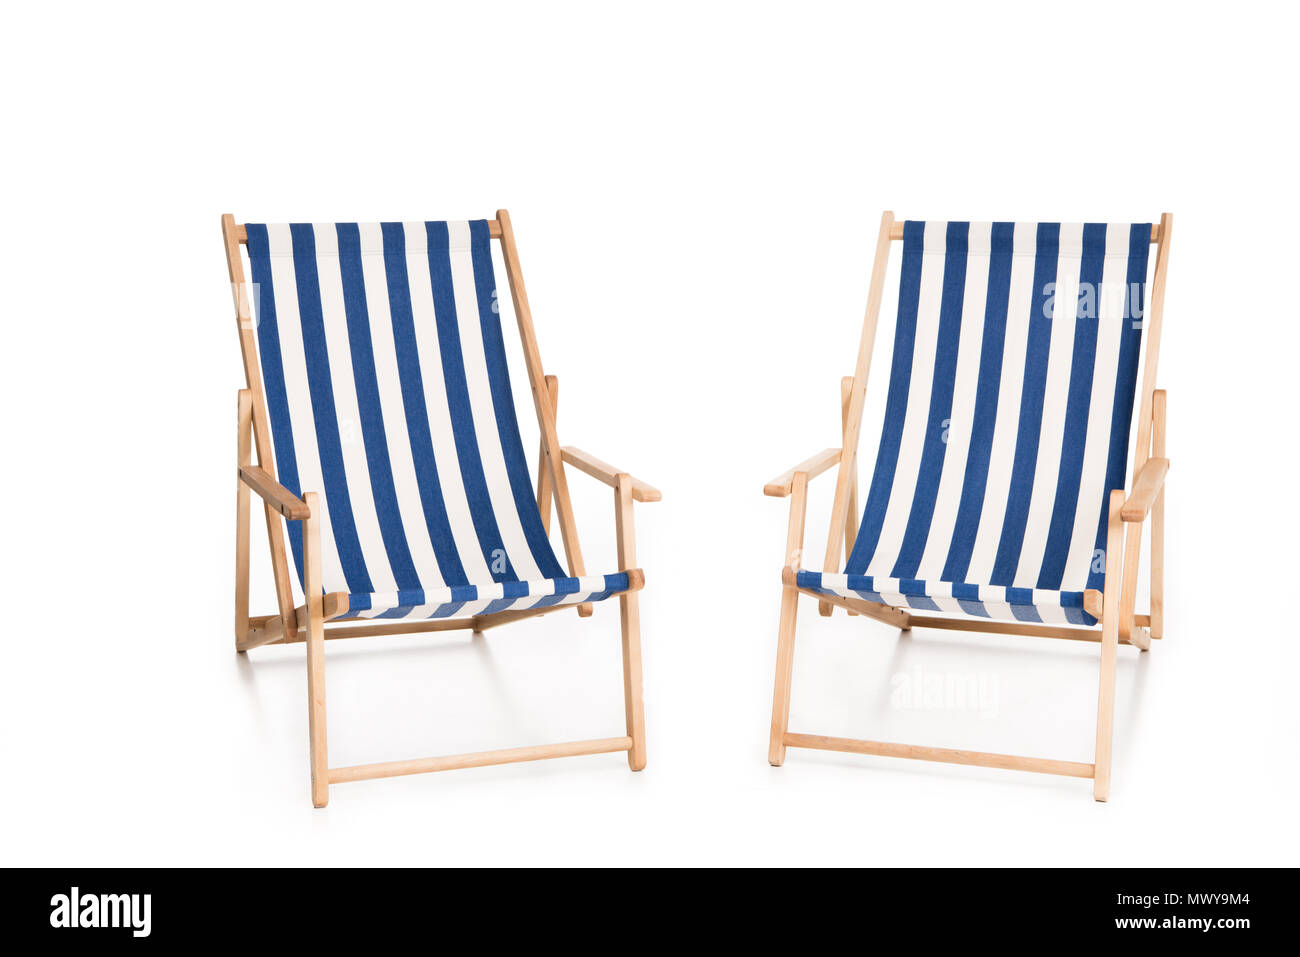 Enjoyable Two Striped Beach Chairs Isolated On White Stock Photo Caraccident5 Cool Chair Designs And Ideas Caraccident5Info